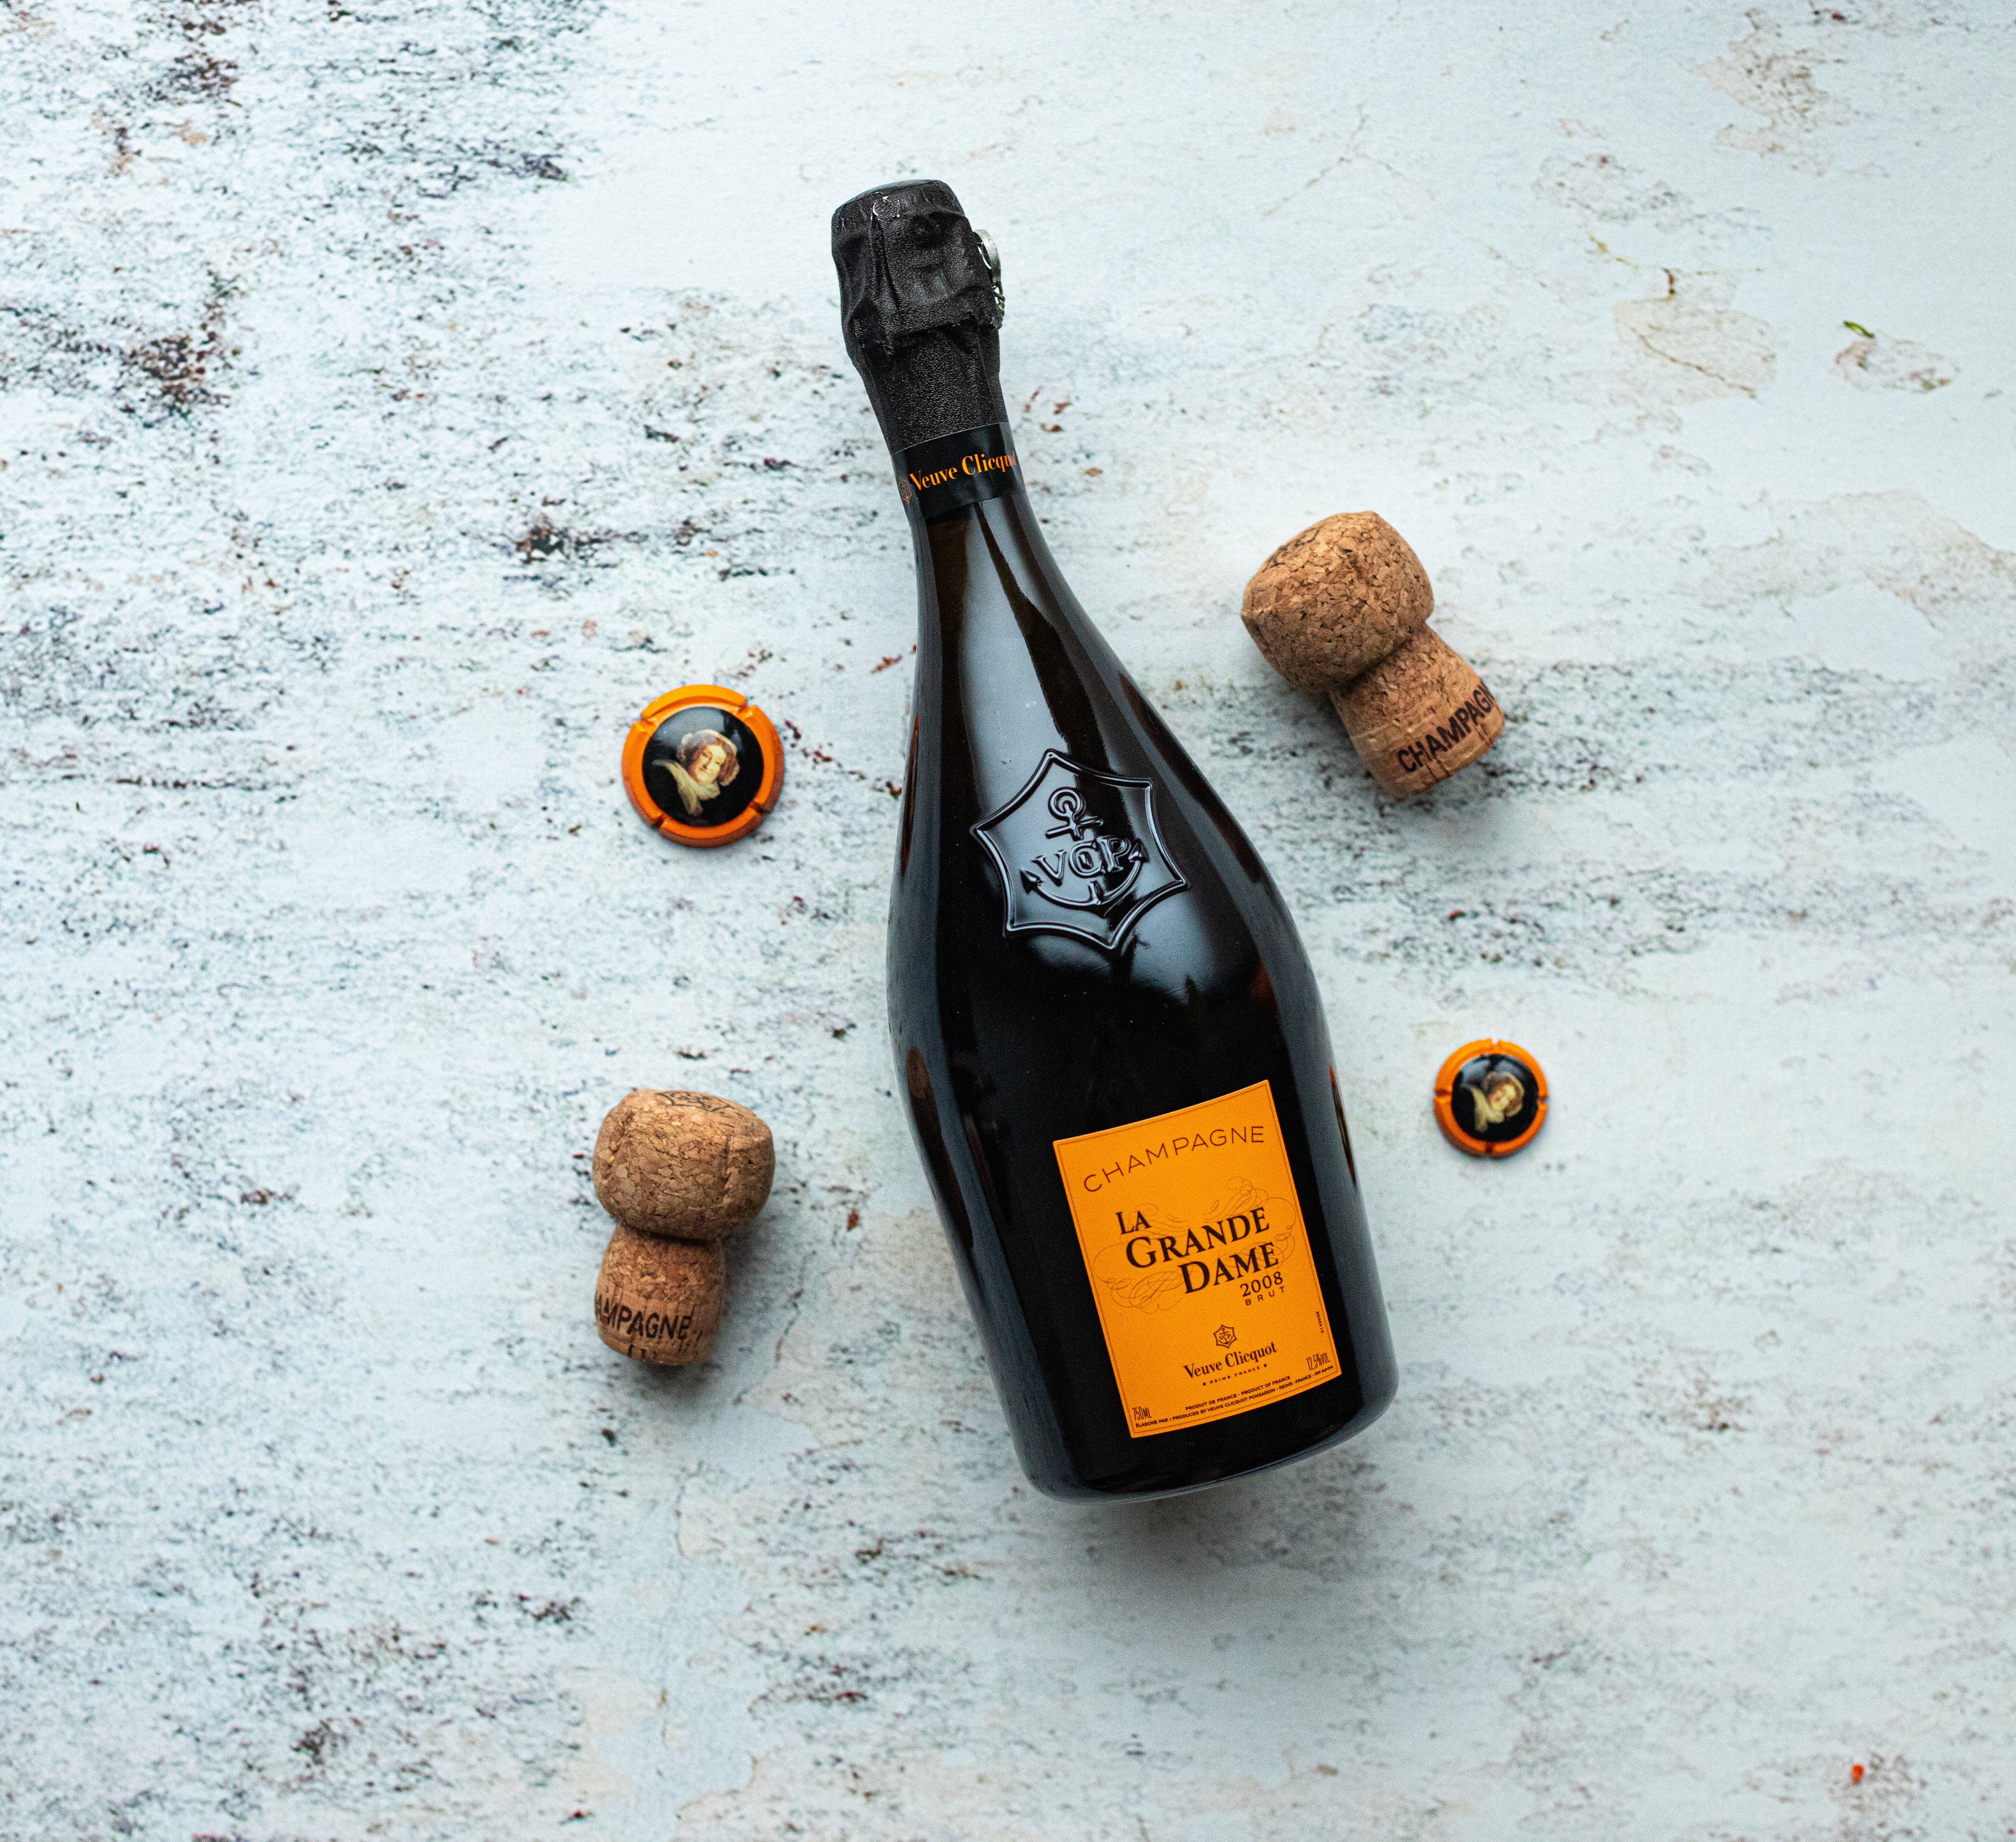 Veuve Clicquot La Grand Dame 2008